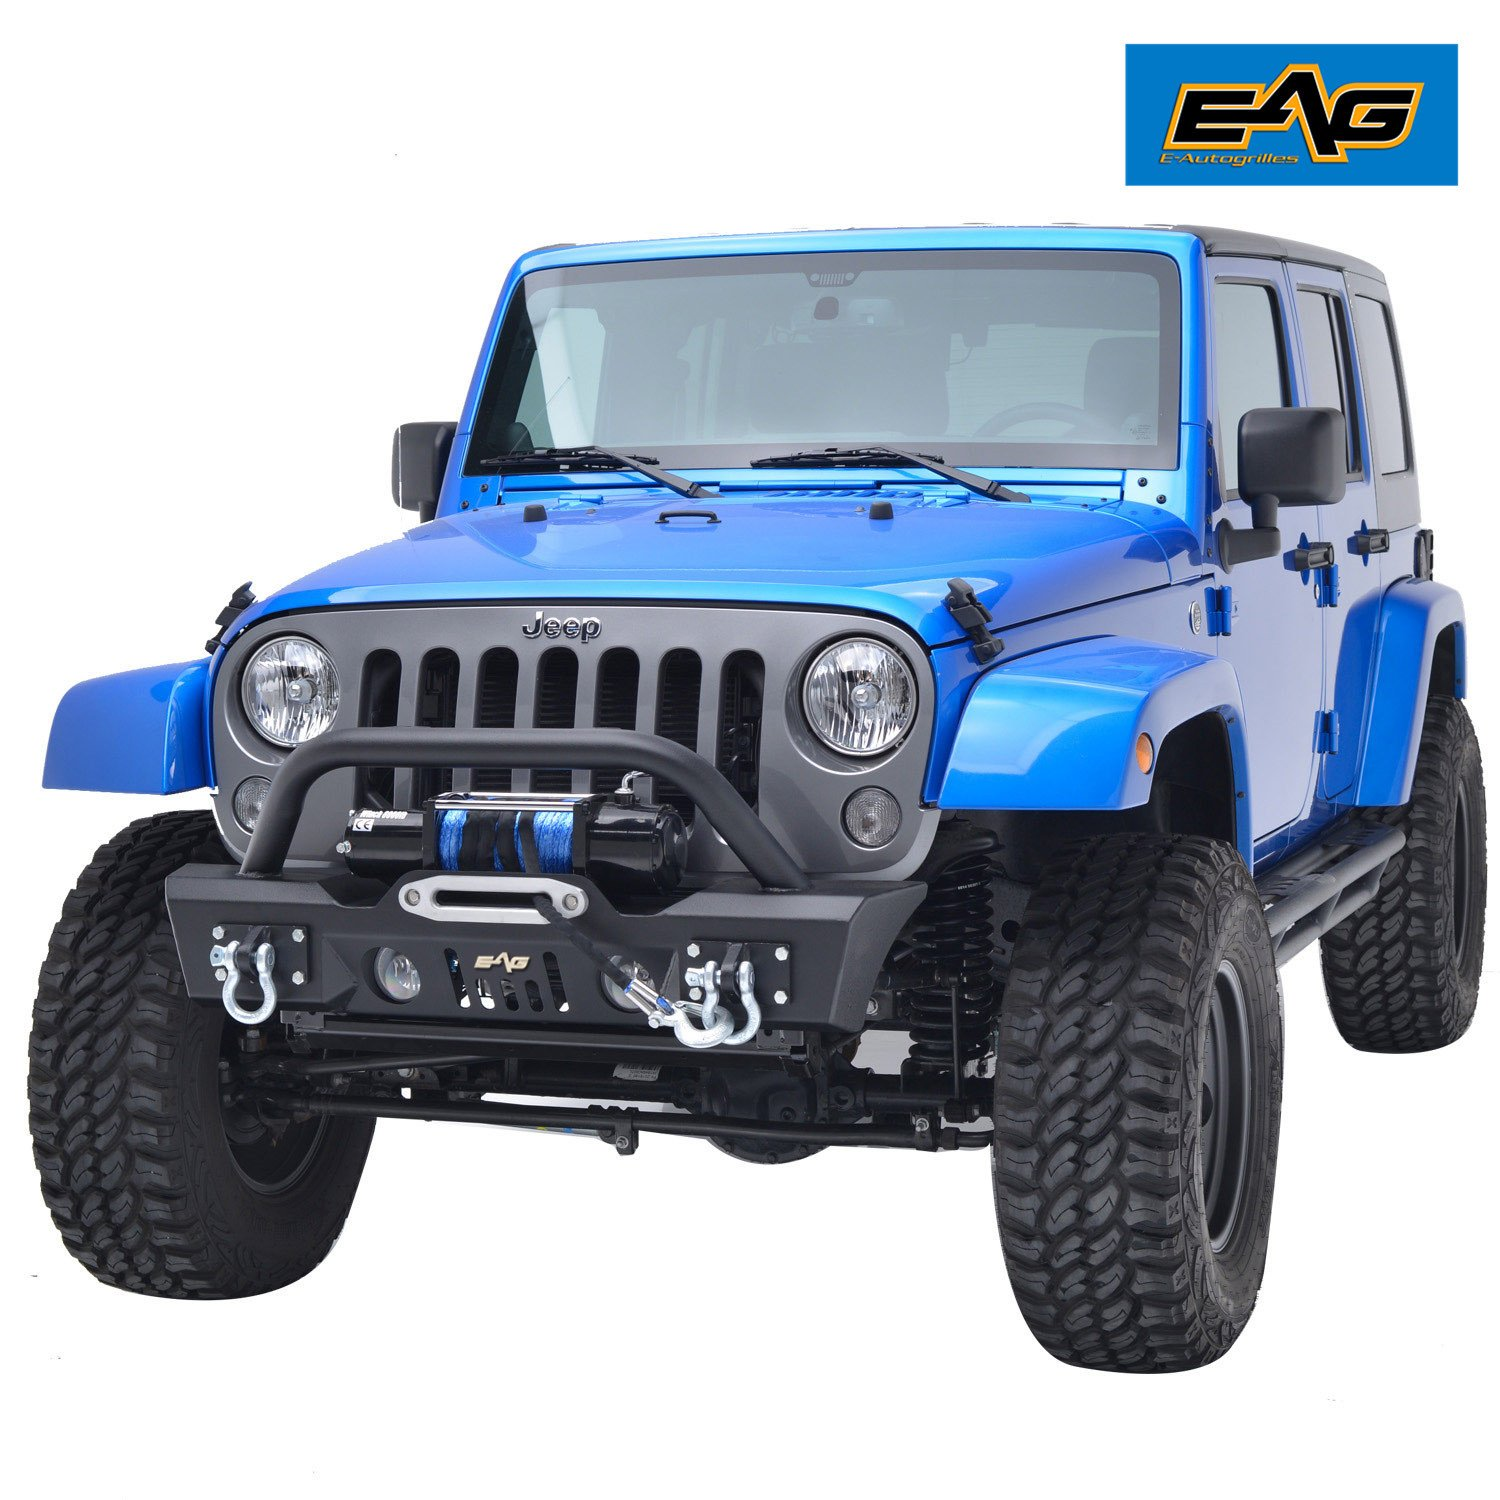 Eag 07 18 Jeep Wrangler Jk Stubby Front Bumper With Oe Fog Light Lights Housing 51 0357 Bumpers Automotive Tibs